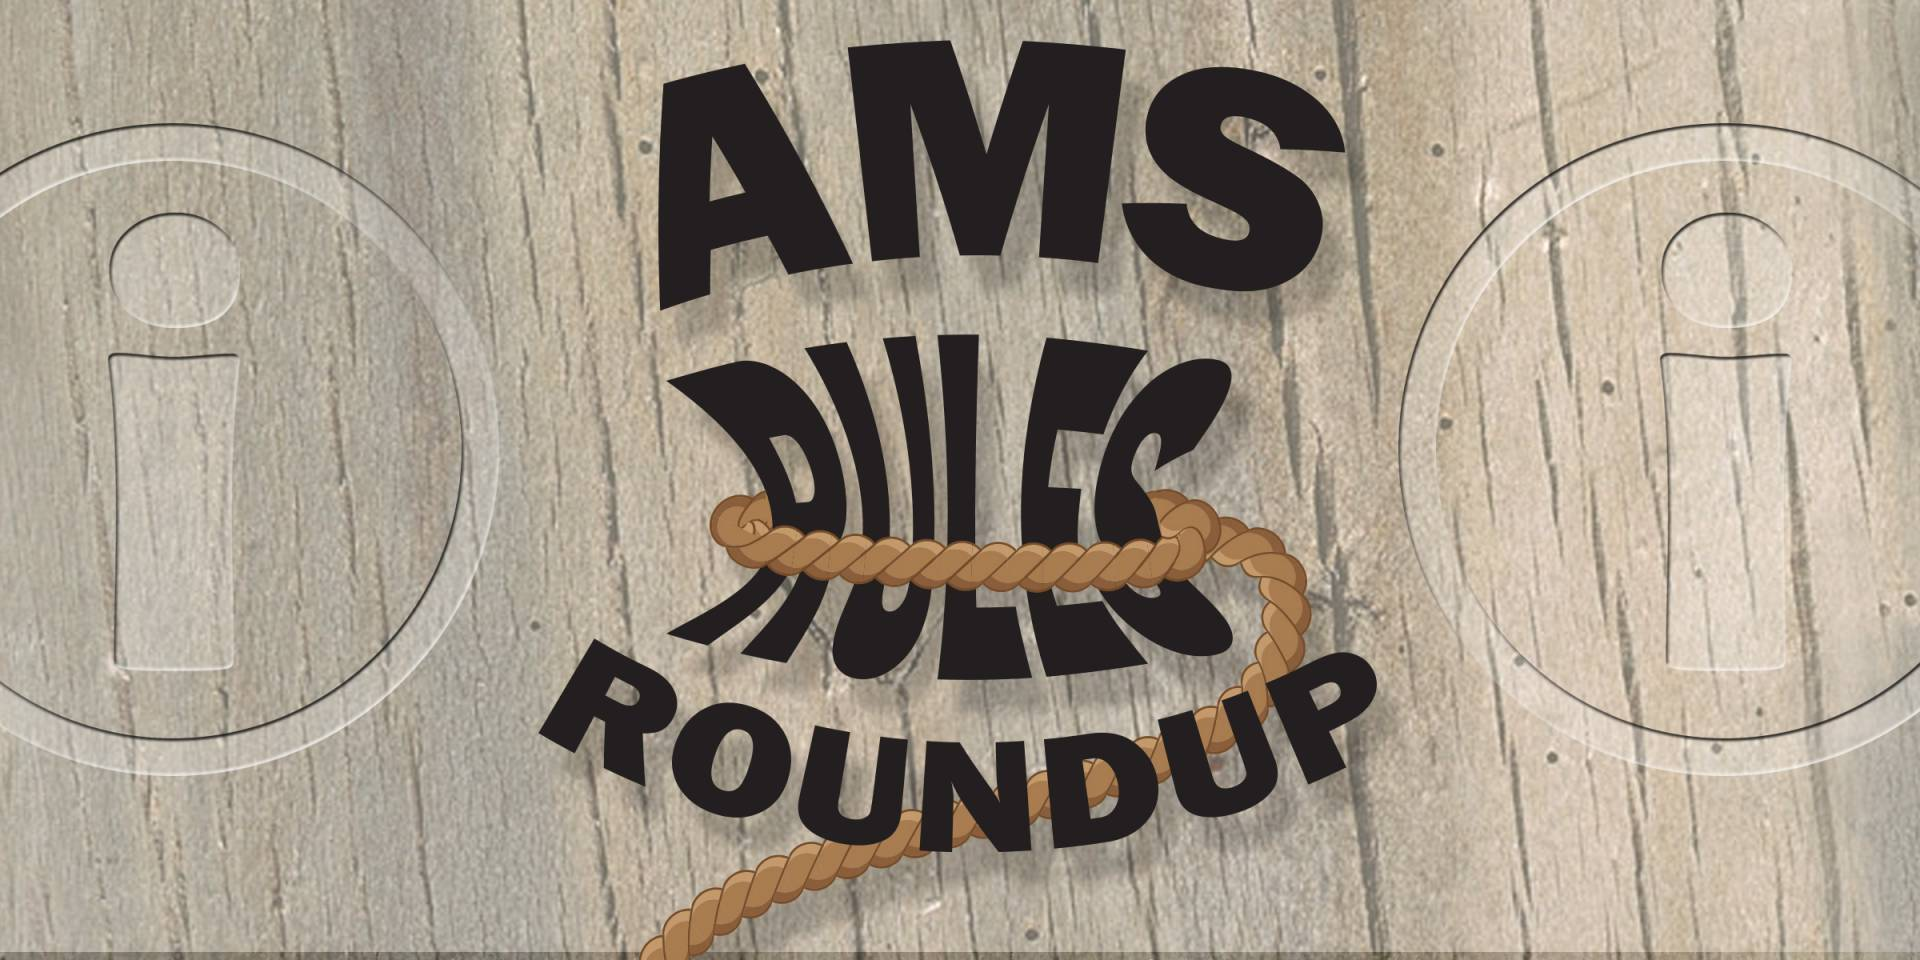 AMS Rules Roundup